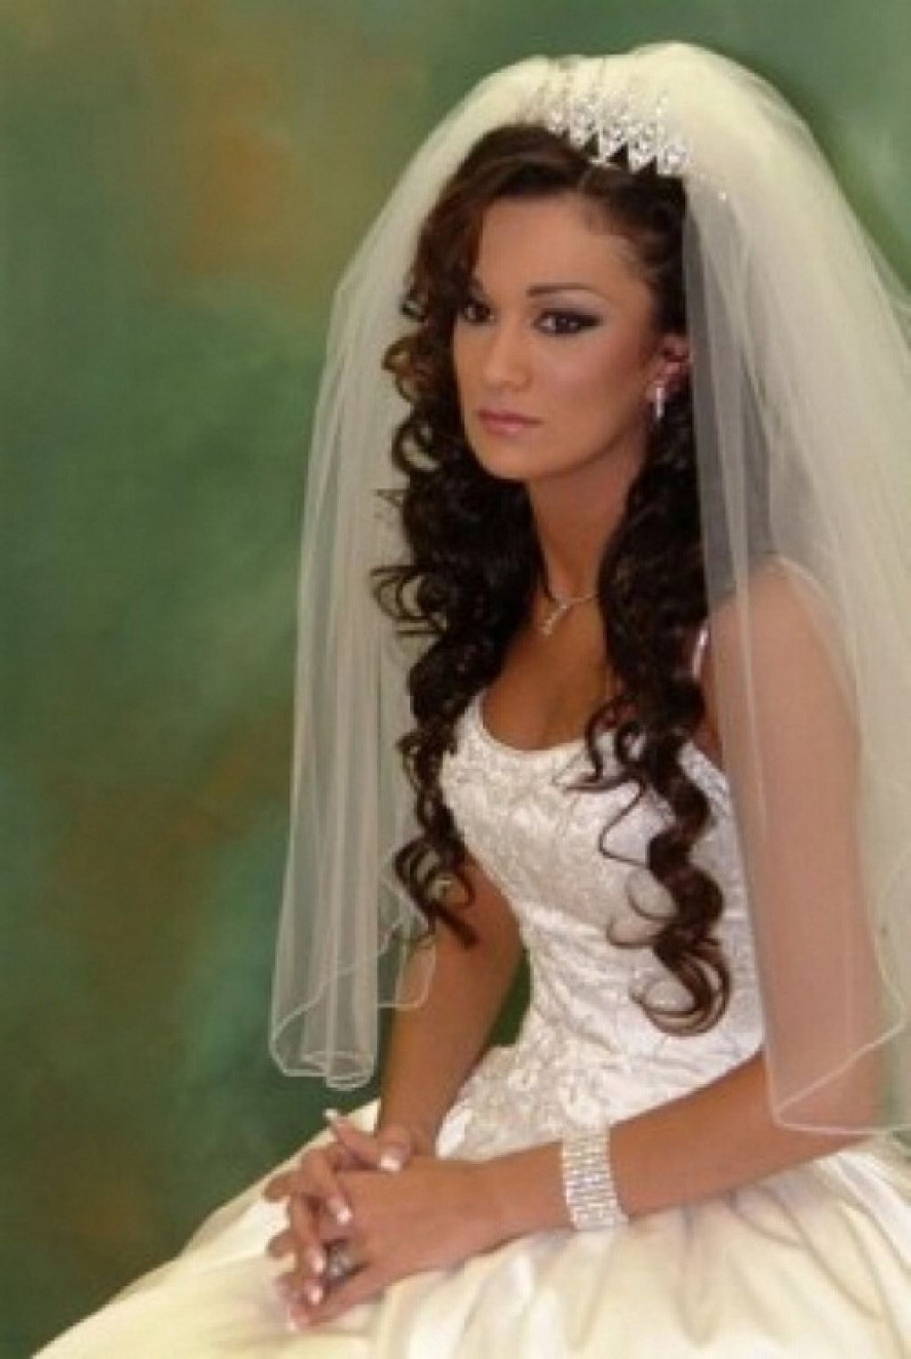 Emejing Wedding Hairstyles With Tiara And Veil Contemporary – Styles Pertaining To Popular Wedding Hairstyles With Veil And Tiara (View 2 of 16)